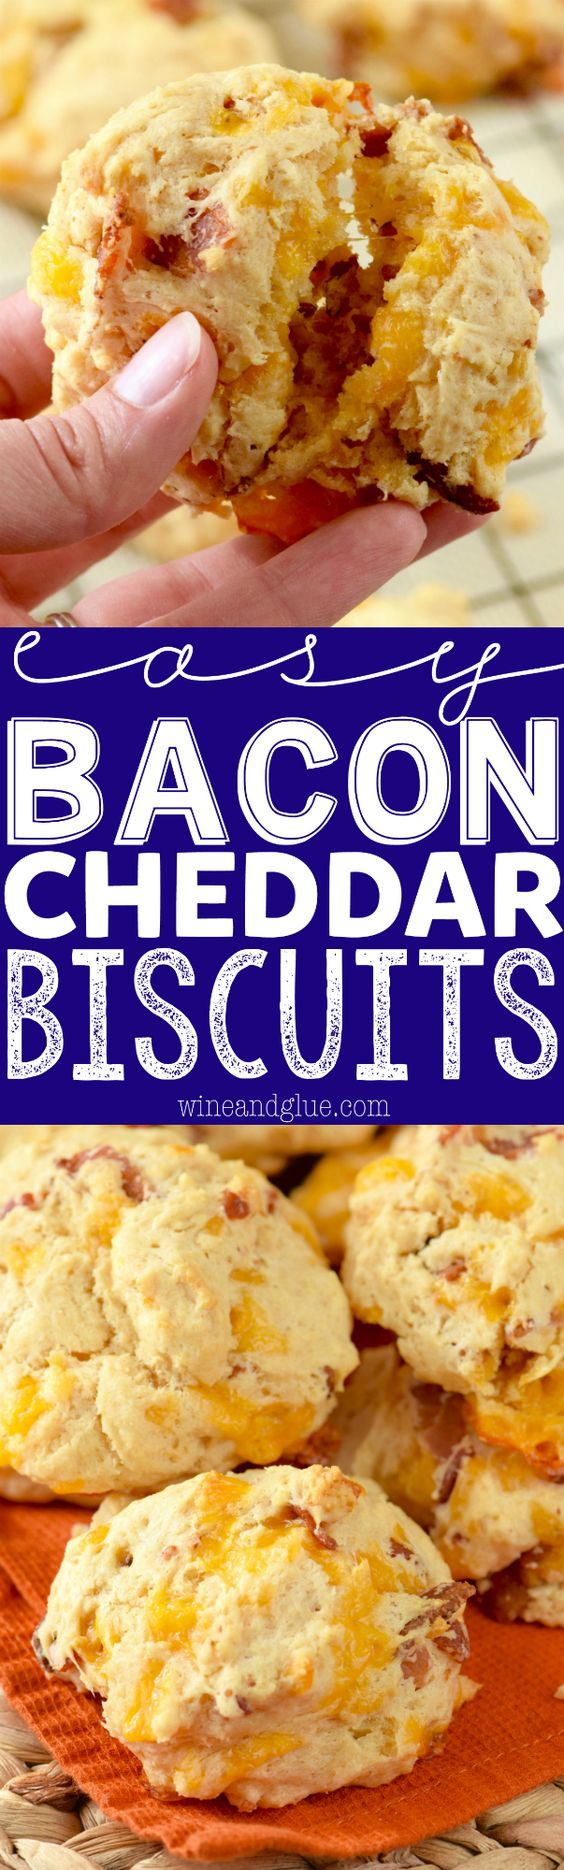 """These Easy Bacon Cheddar Biscuits are so easy that you can perfectly throw them together right before serving your meal!"" via Wine & Glue - The Best Homemade Biscuits Recipes - Quick, Easy and Delicious Bread Sides for Breakfast, Brunch, Lunch and Family Dinner!"